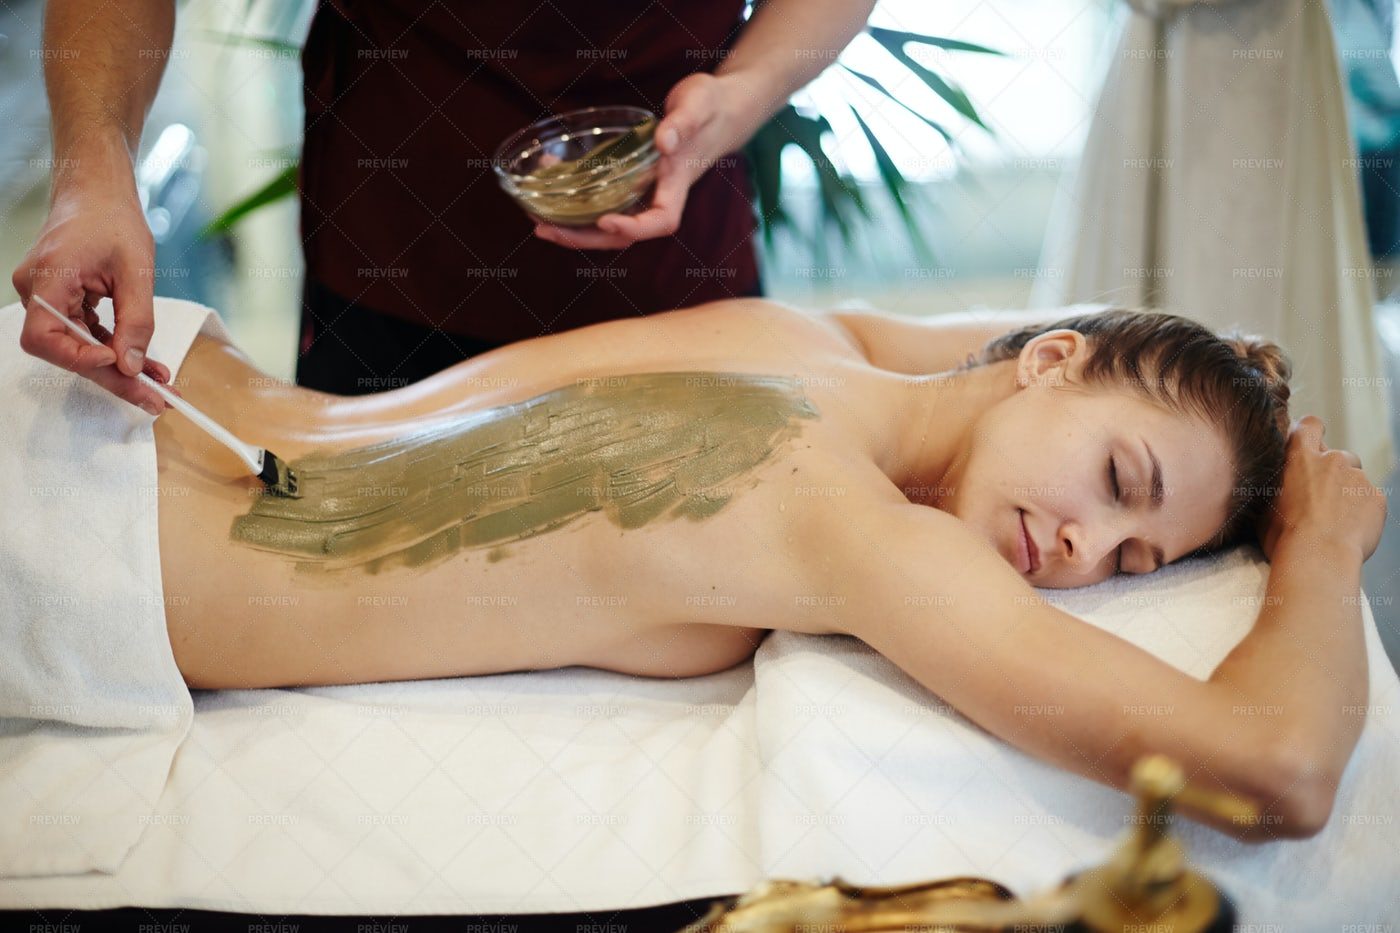 Mud Treatments In SPA: Stock Photos